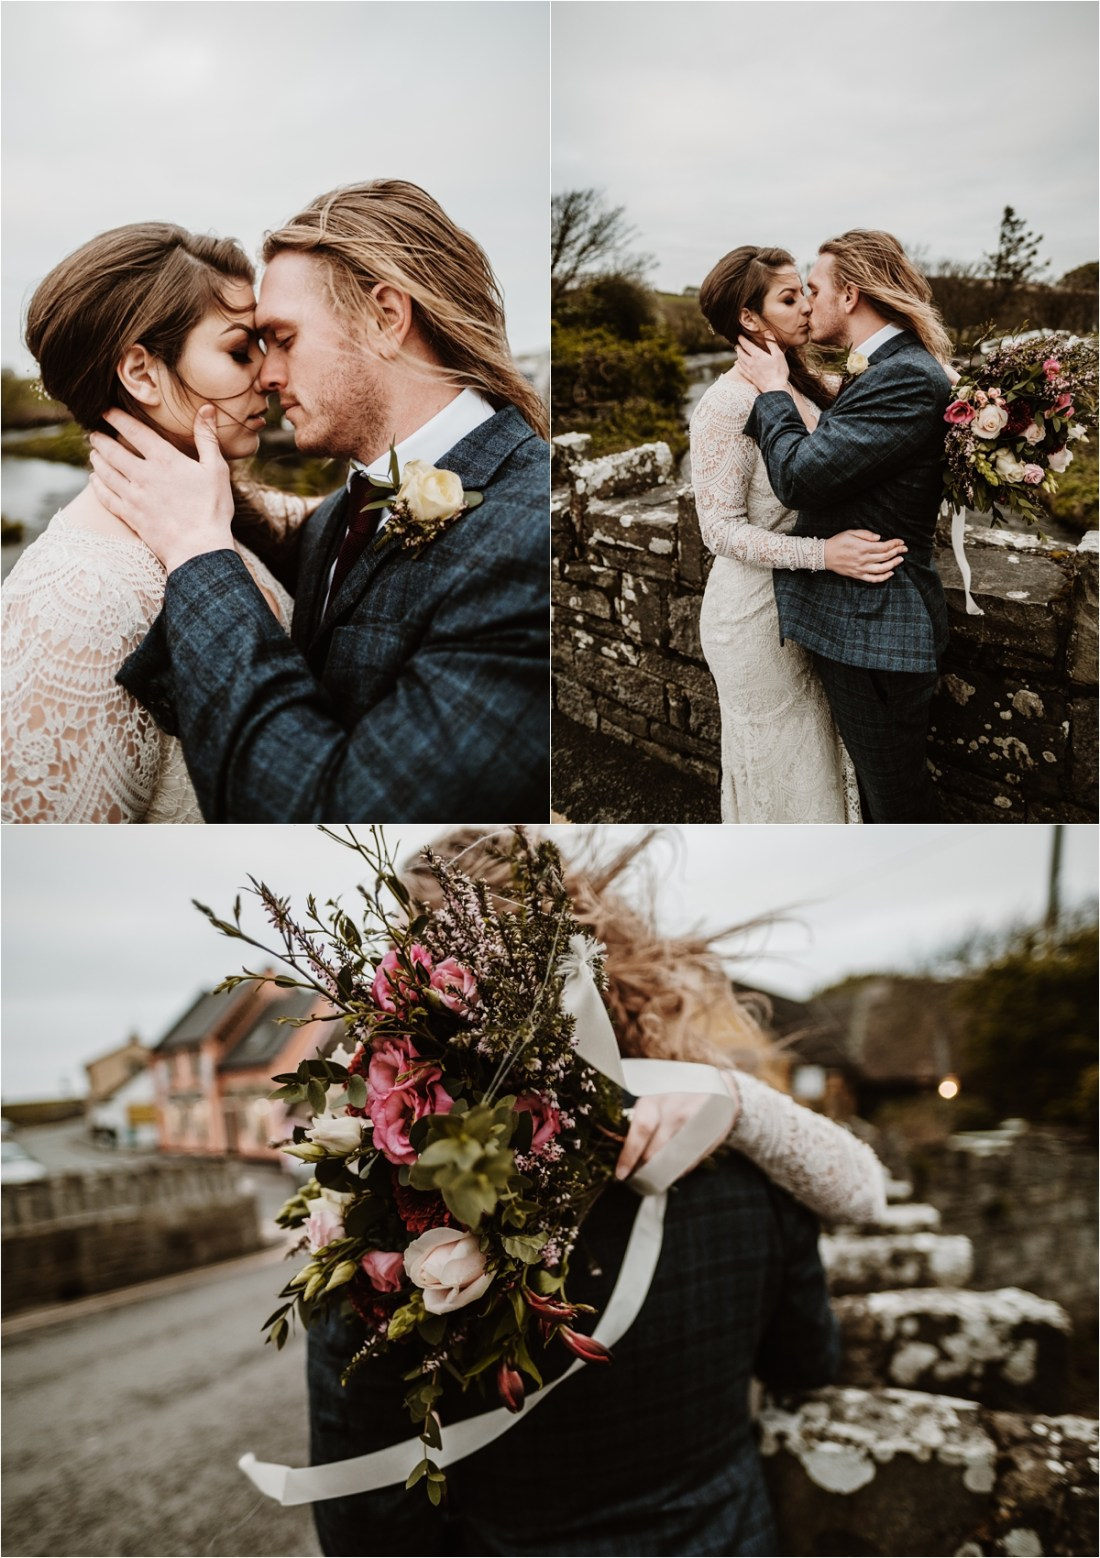 The Bride and groom embrace on a stone bride in Doolin Ireland as the wind blows their hair. Photos by Europe Elopement Photographer Wild Connections Photography